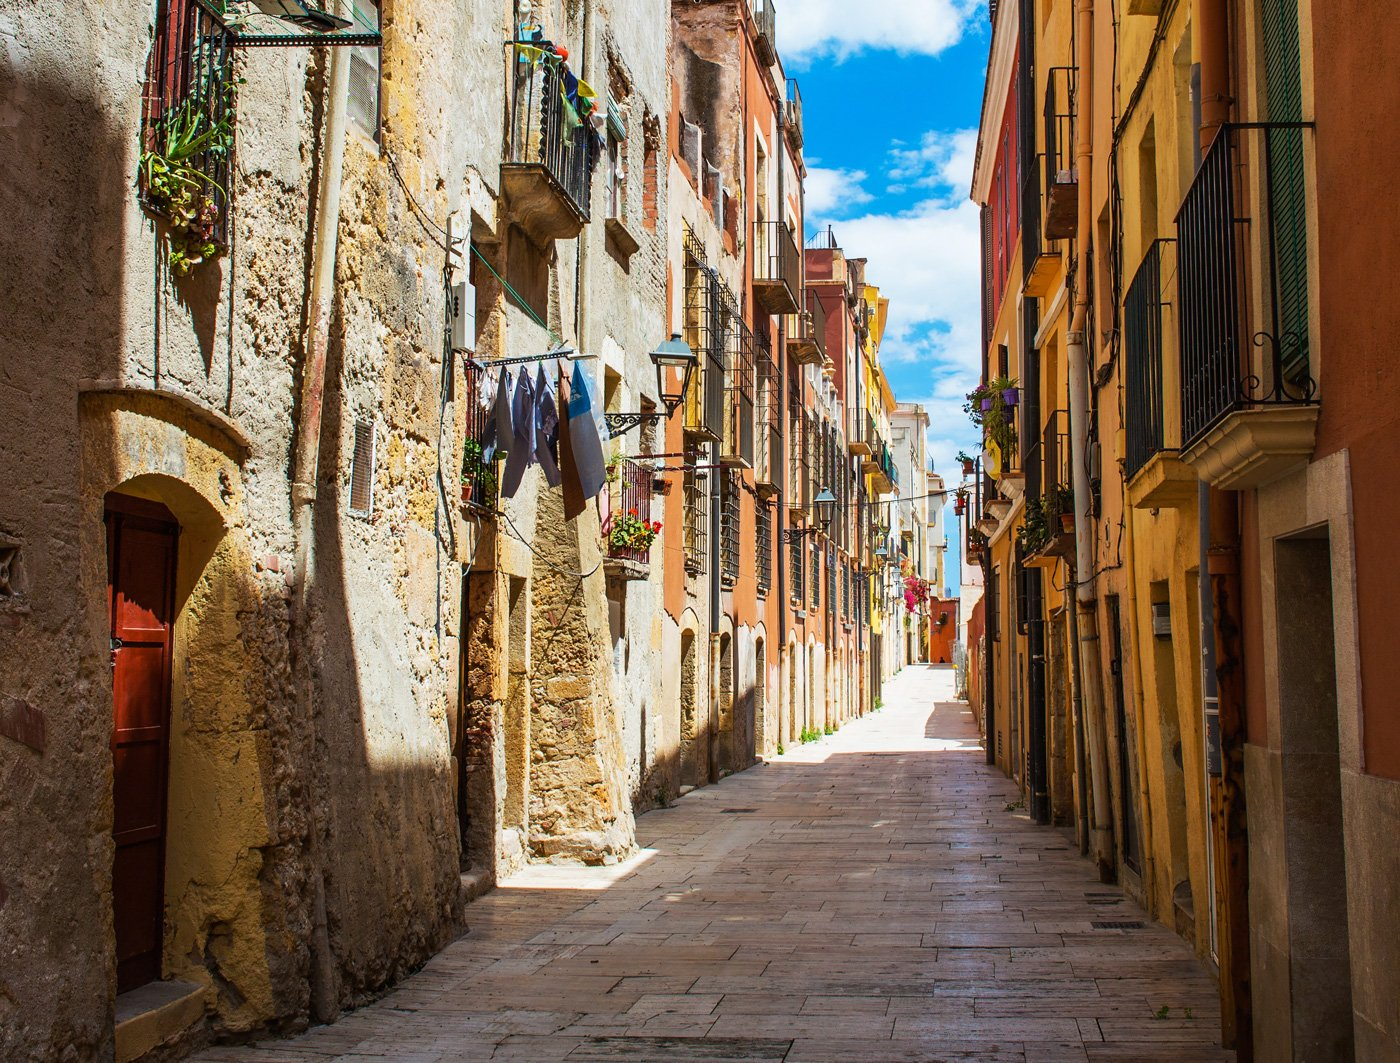 A colorful street in #Tarragona old town   #travel #streetphotography #Catalonia https://t.co/MrHgGlUIeB